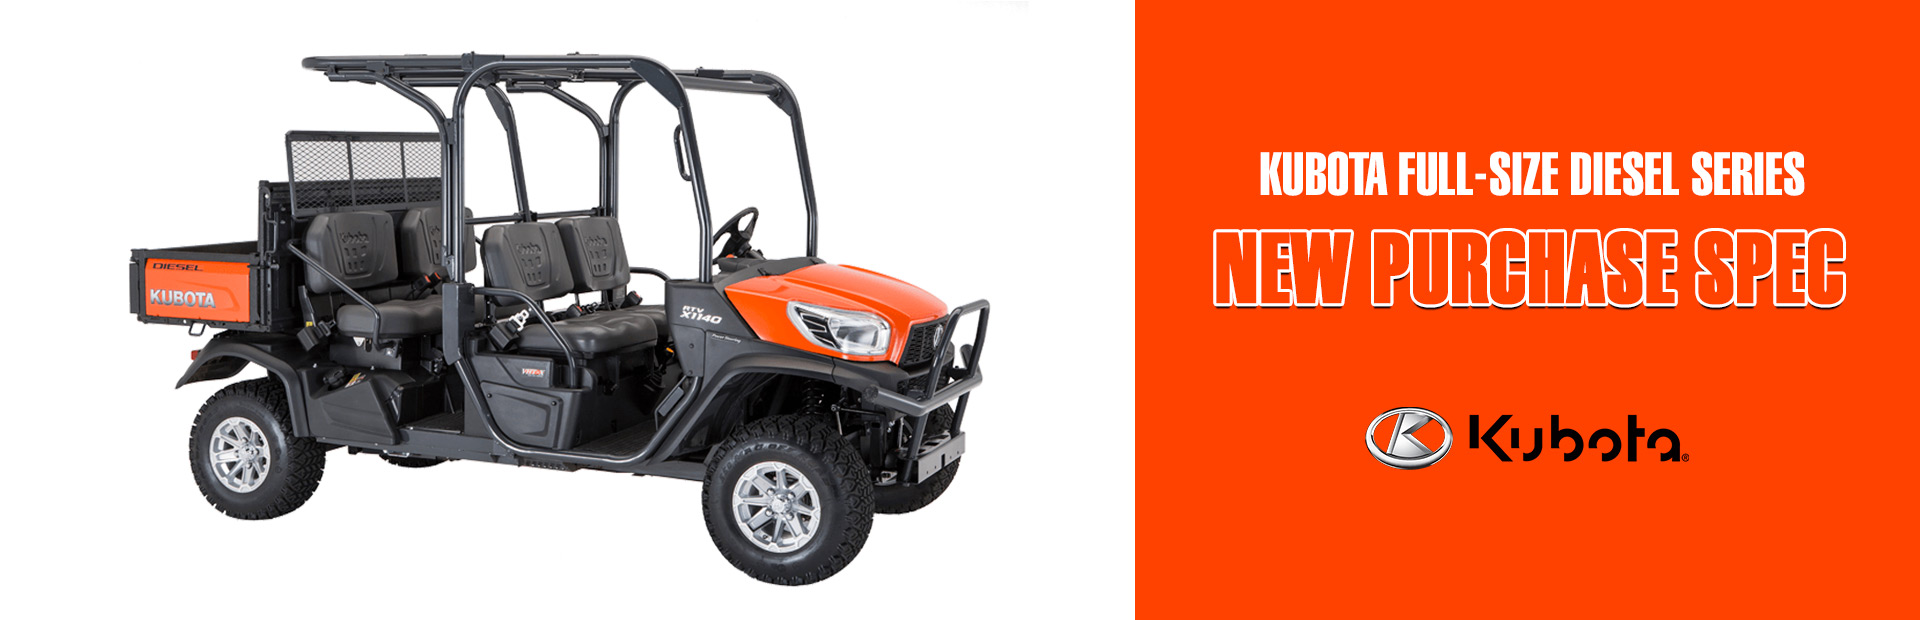 KUBOTA FULL-SIZE DIESEL SERIES - NEW PURCHASE SPEC